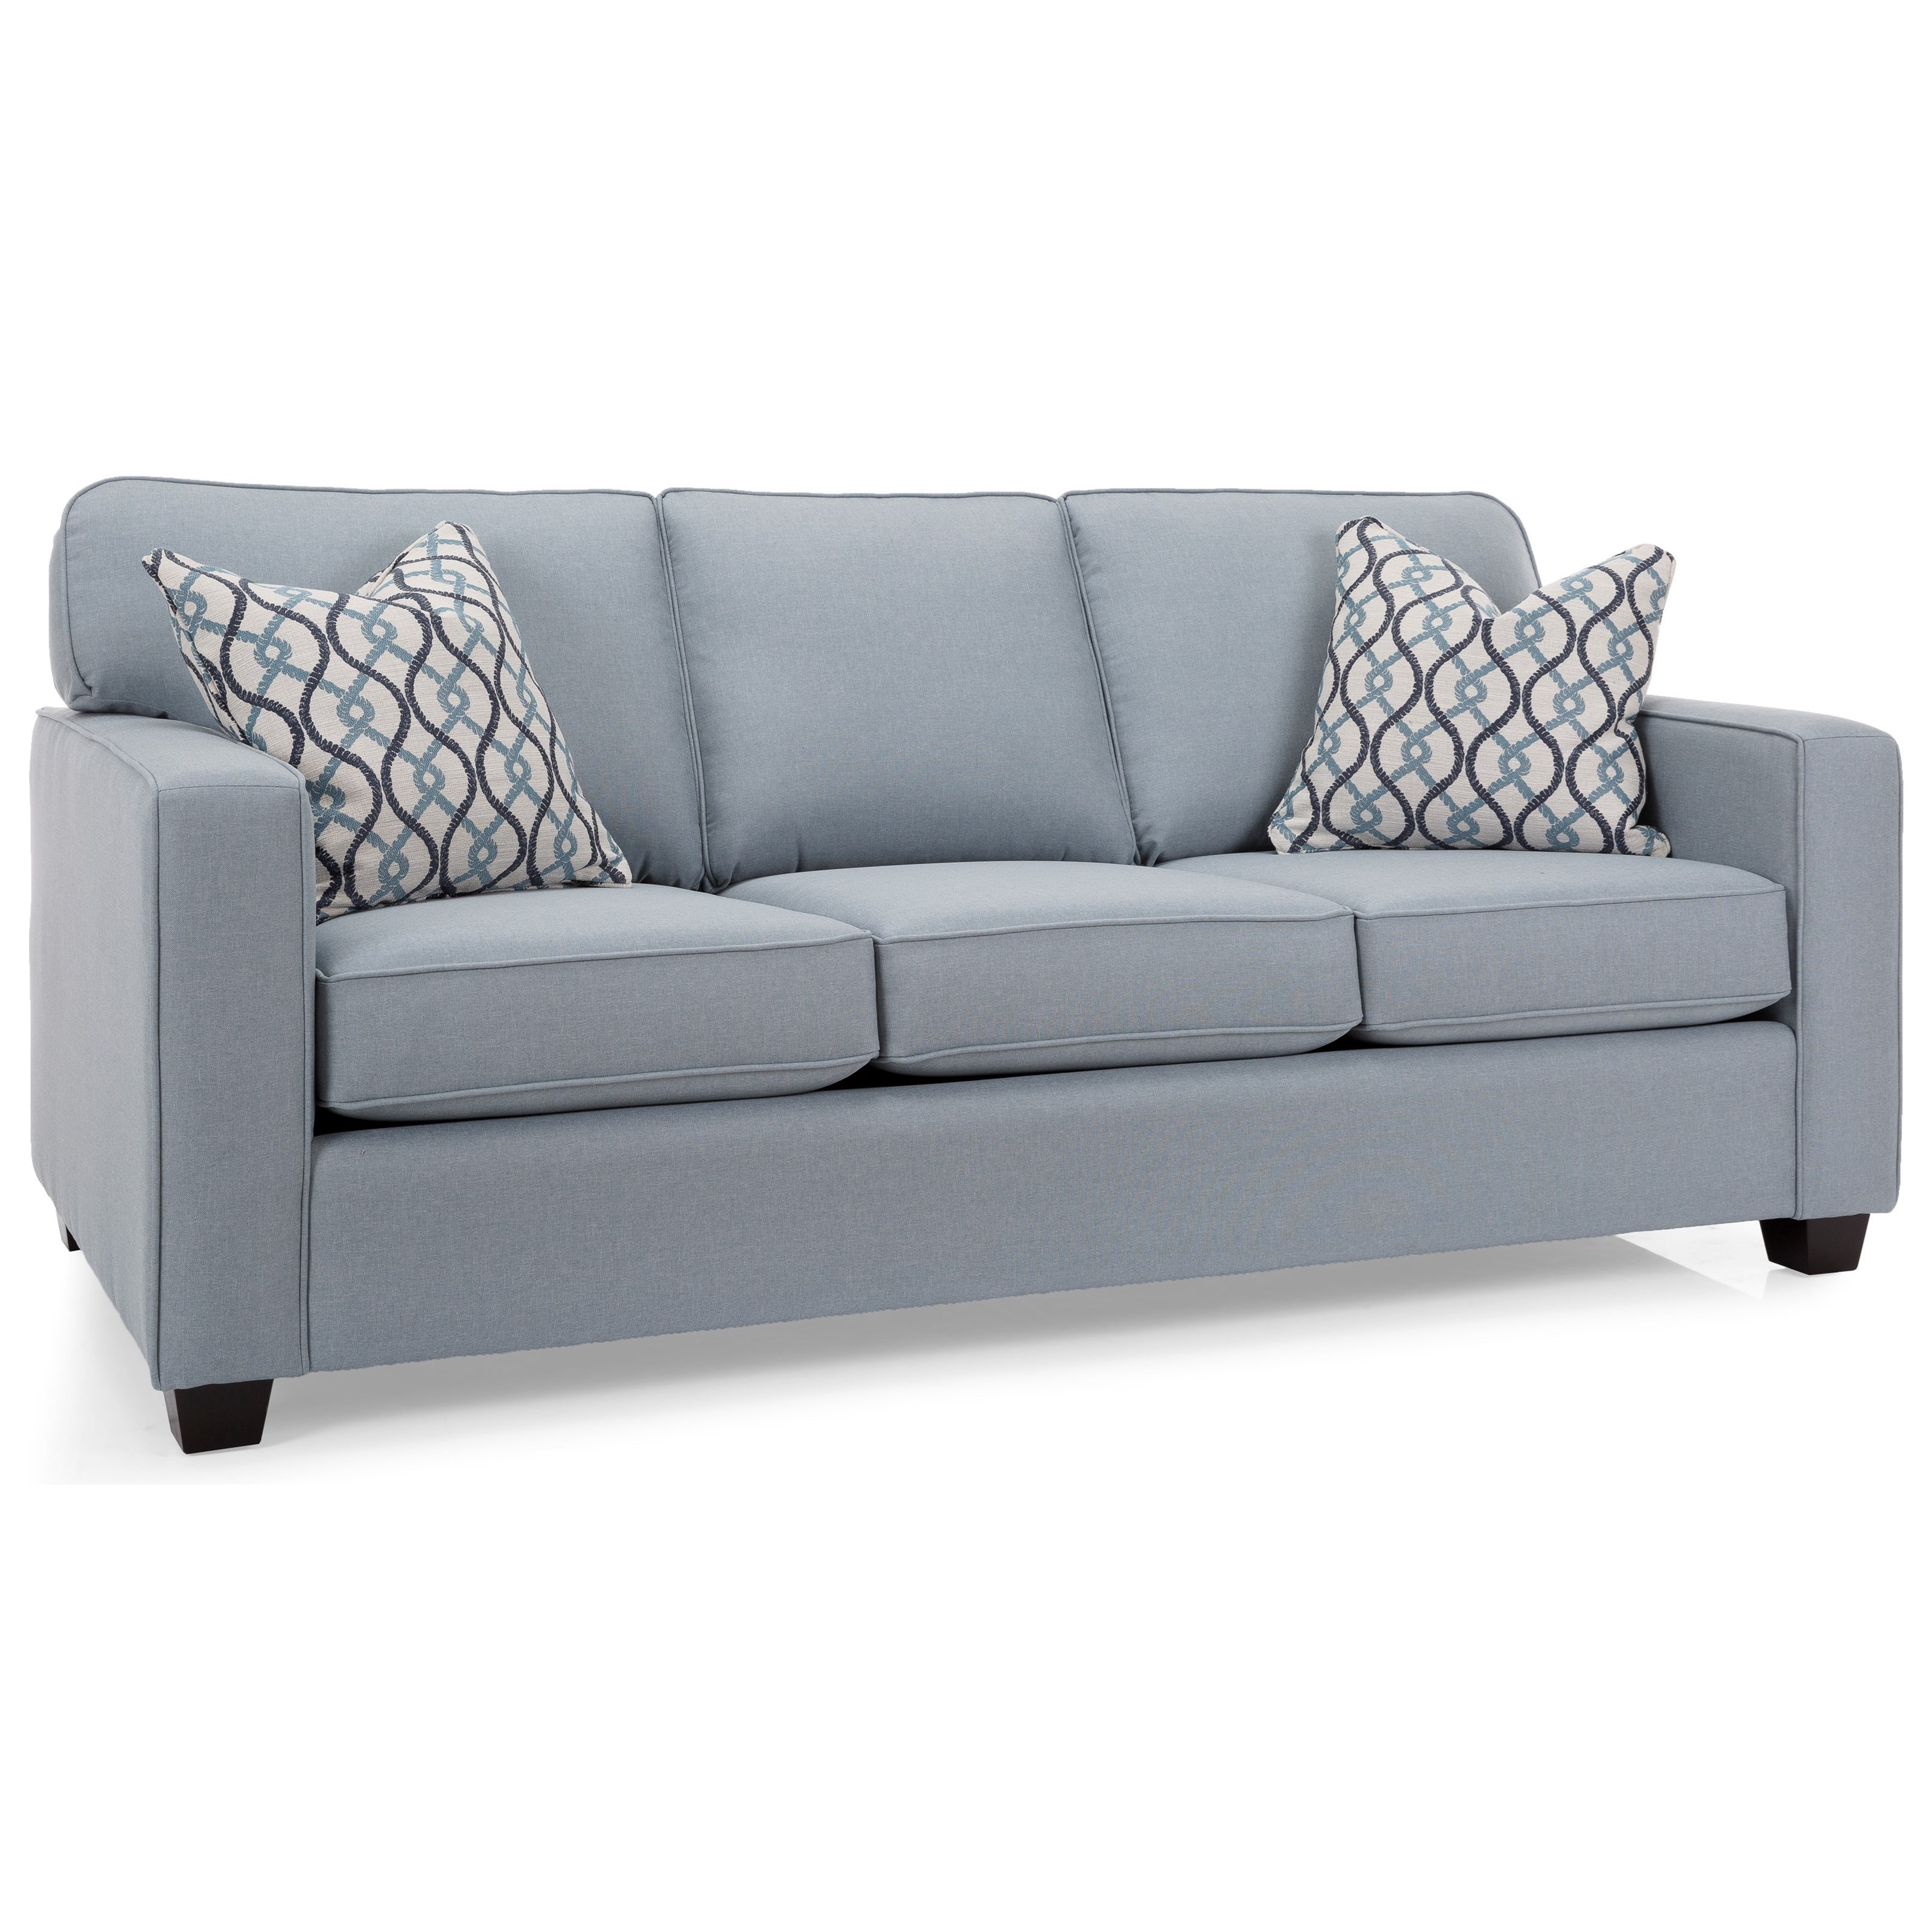 2541 Sofa by Decor-Rest at Rooms for Less